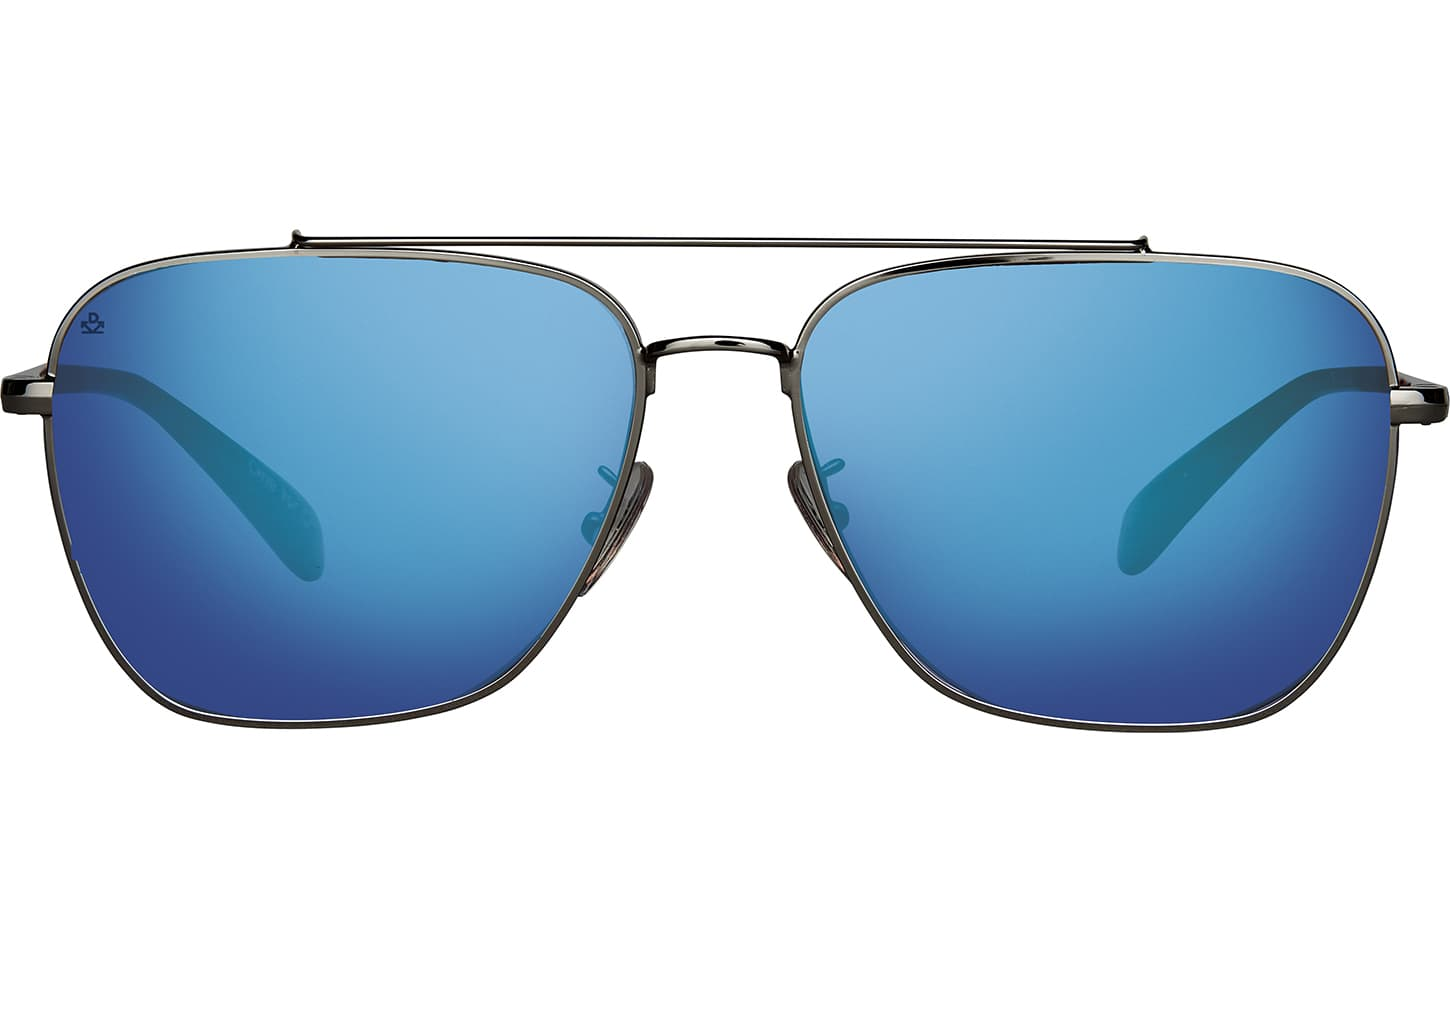 TOMS - Irwin 201 Gunmetal Zeiss Sunglasses / Deep Blue Mirror Lenses